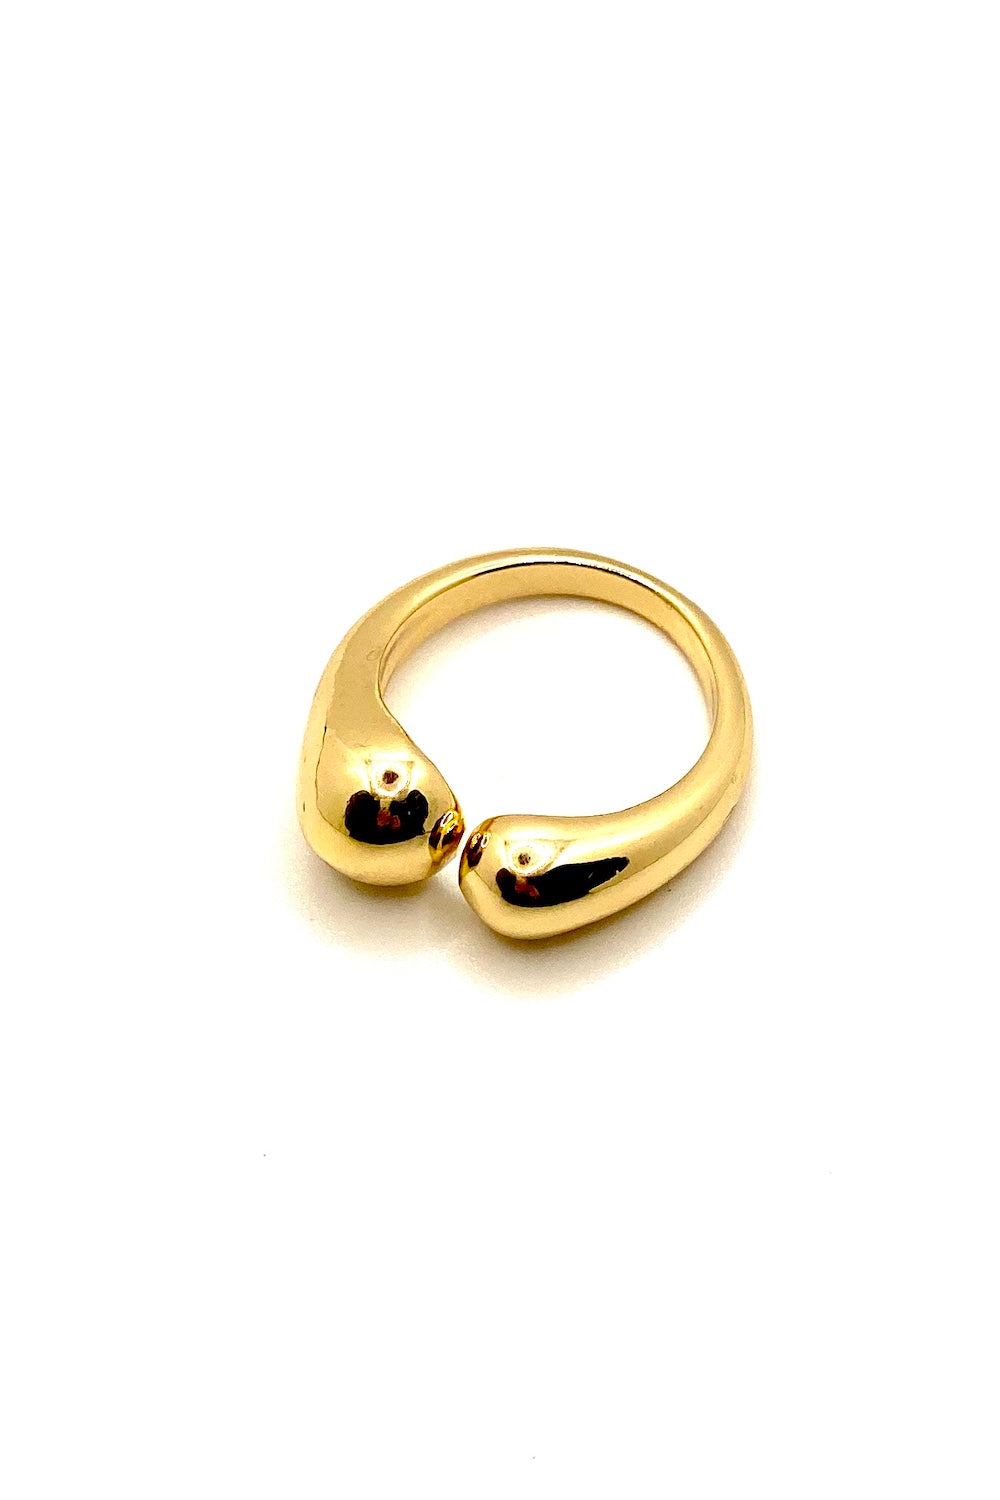 JUDITH GOLD RING